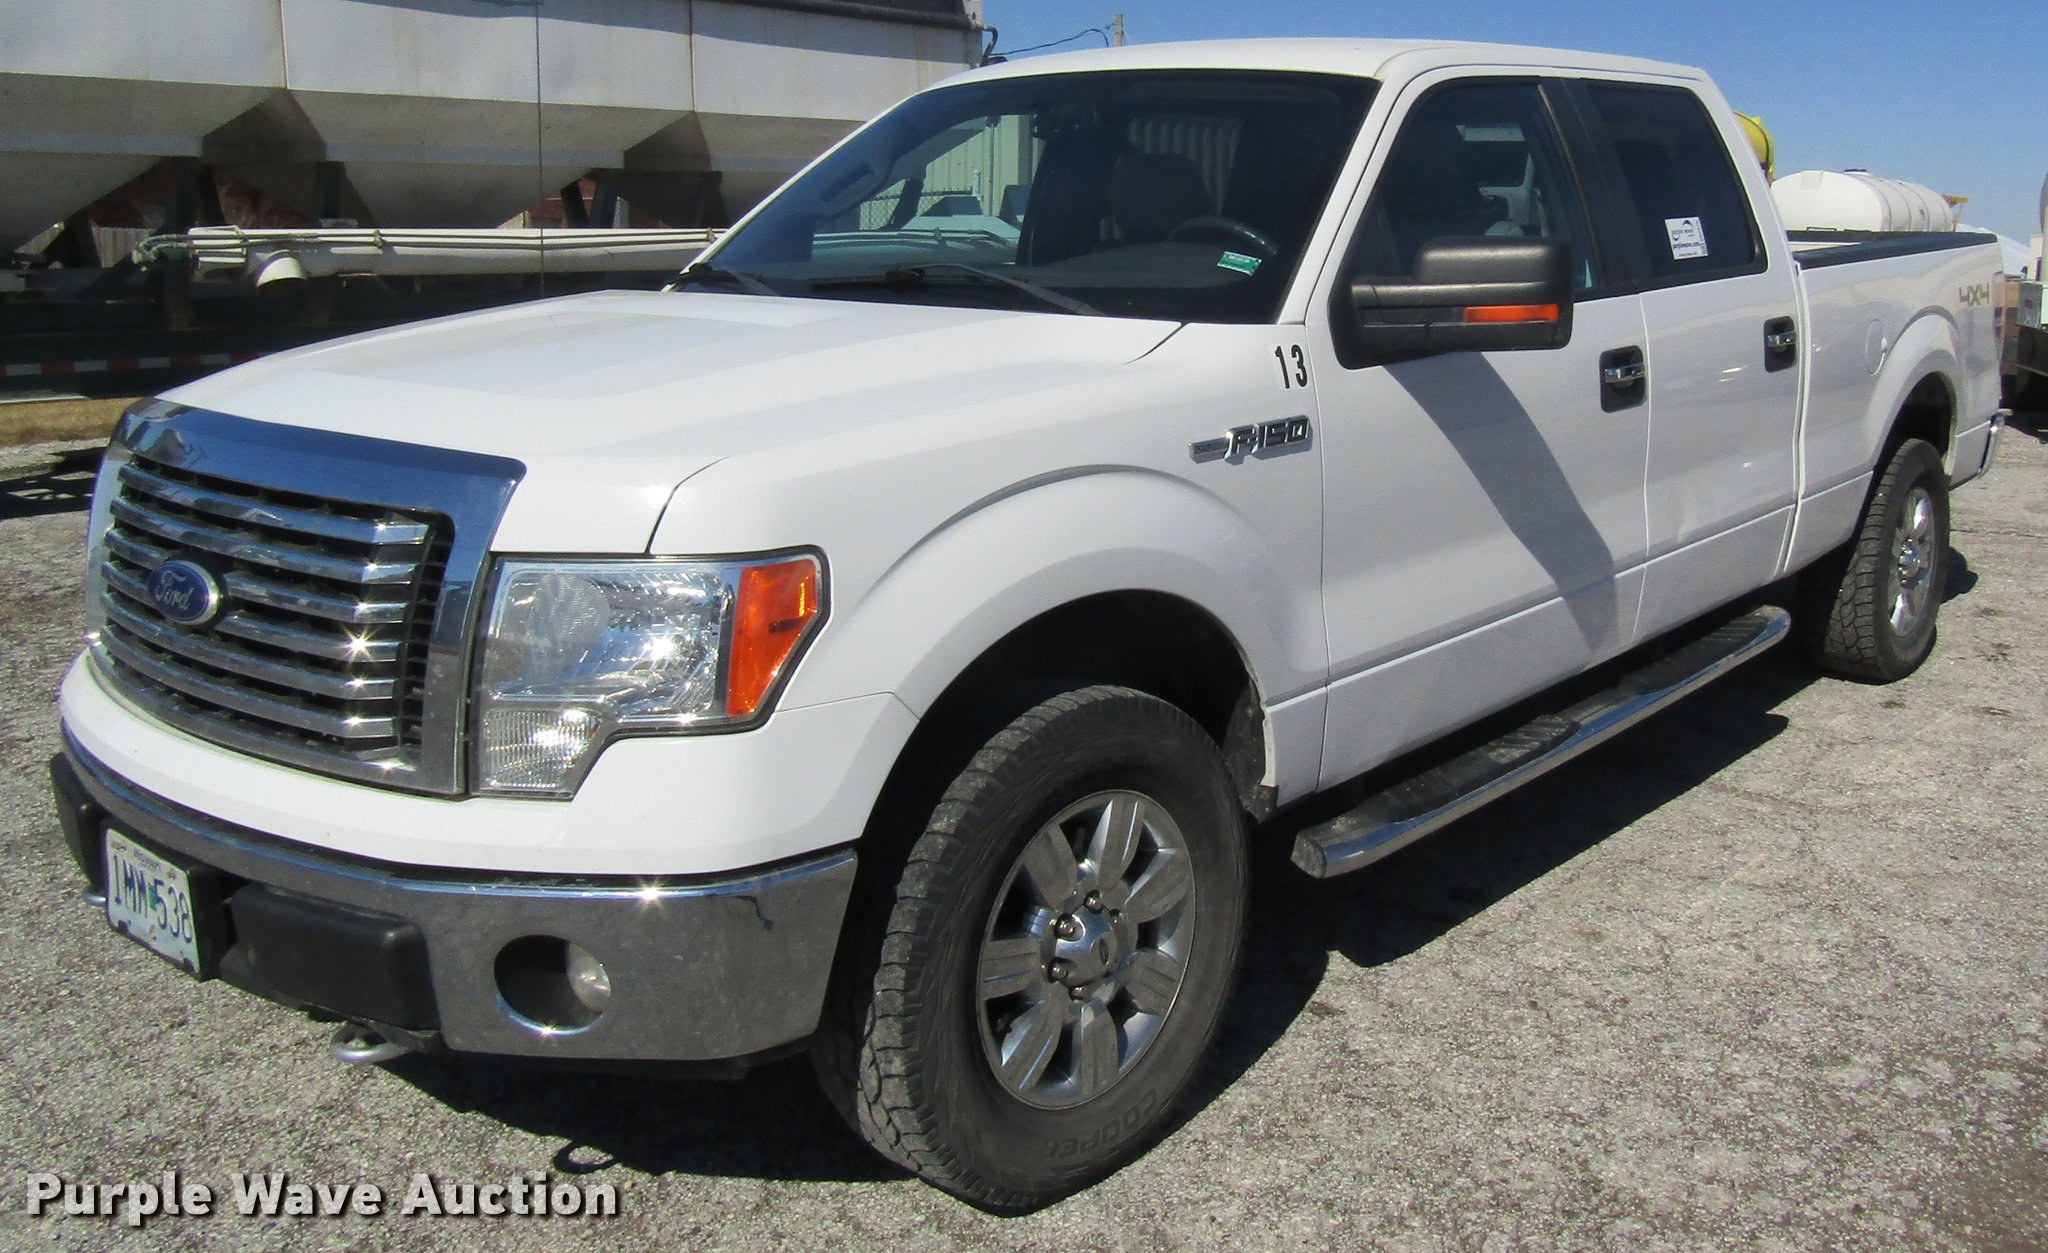 2010 Ford F150 Xlt Supercrew Pickup Truck Item Db5970 So Fuel Filter F 150 Image For